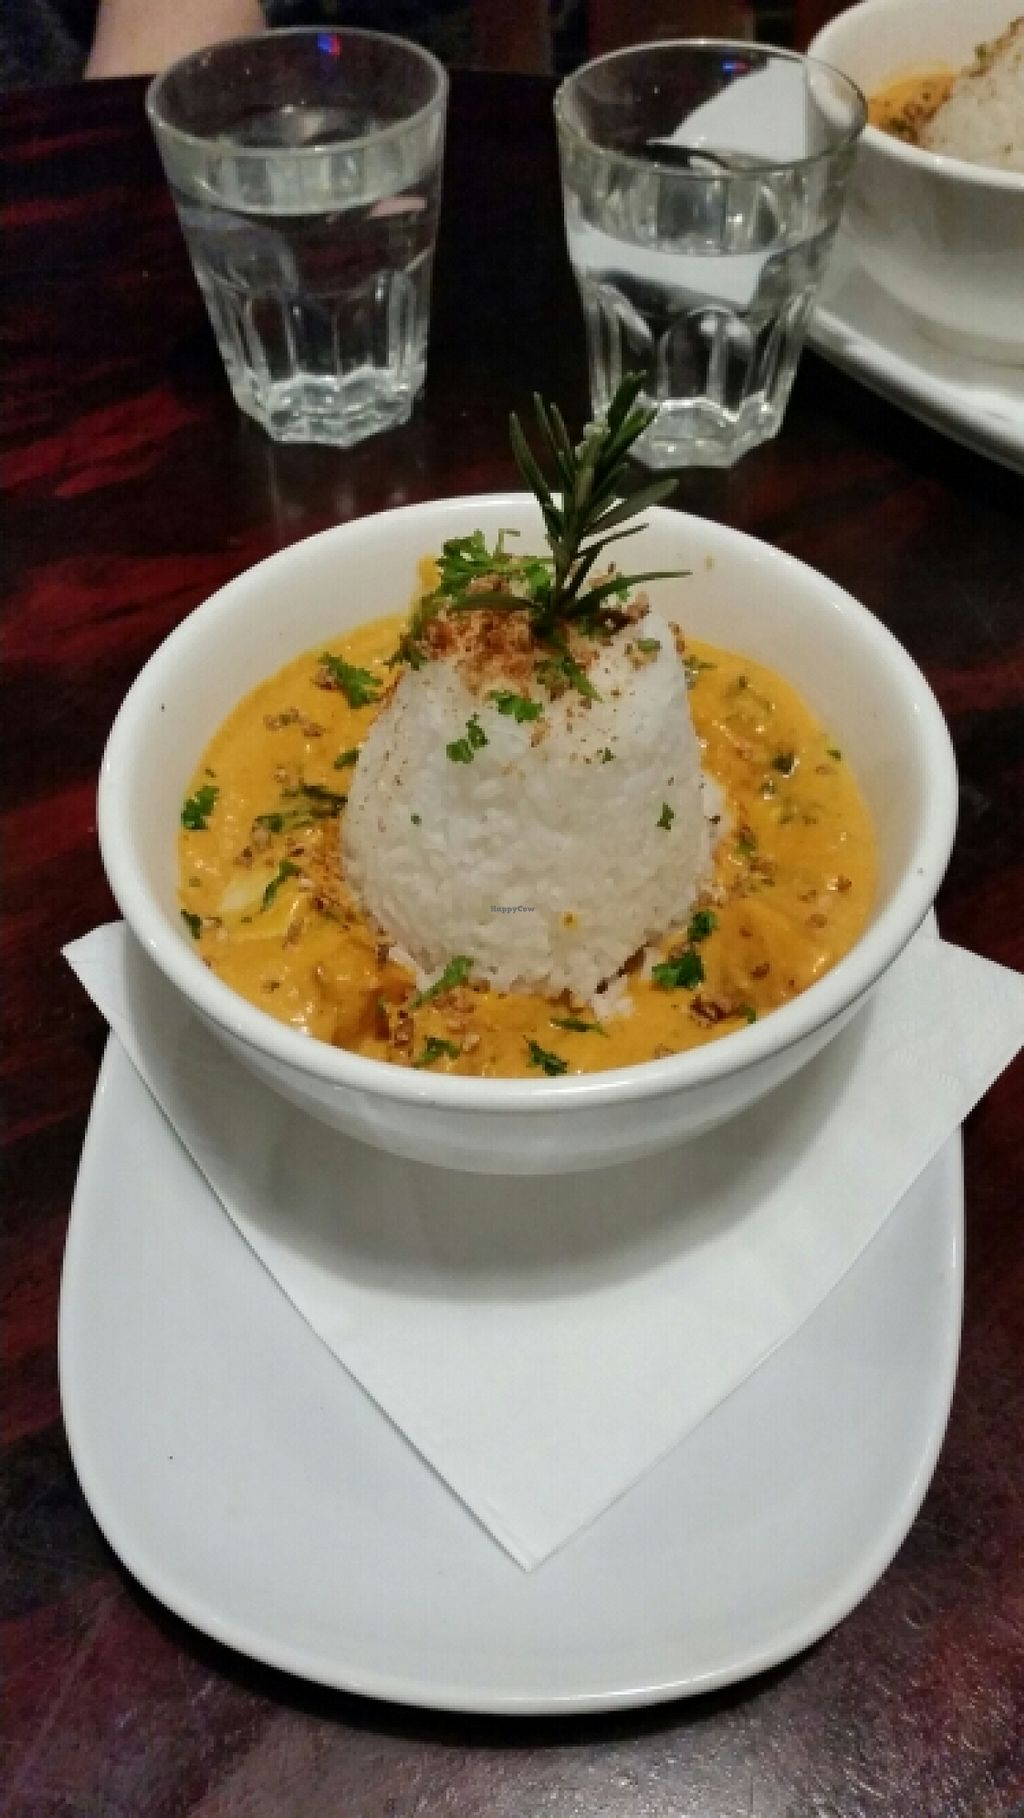 "Photo of Midnight Espresso Bar  by <a href=""/members/profile/AndyTheVWDude"">AndyTheVWDude</a> <br/>Pumpkin Spinach Tofu Curry - May 2016 - Tasty! <br/> May 30, 2016  - <a href='/contact/abuse/image/5126/151452'>Report</a>"